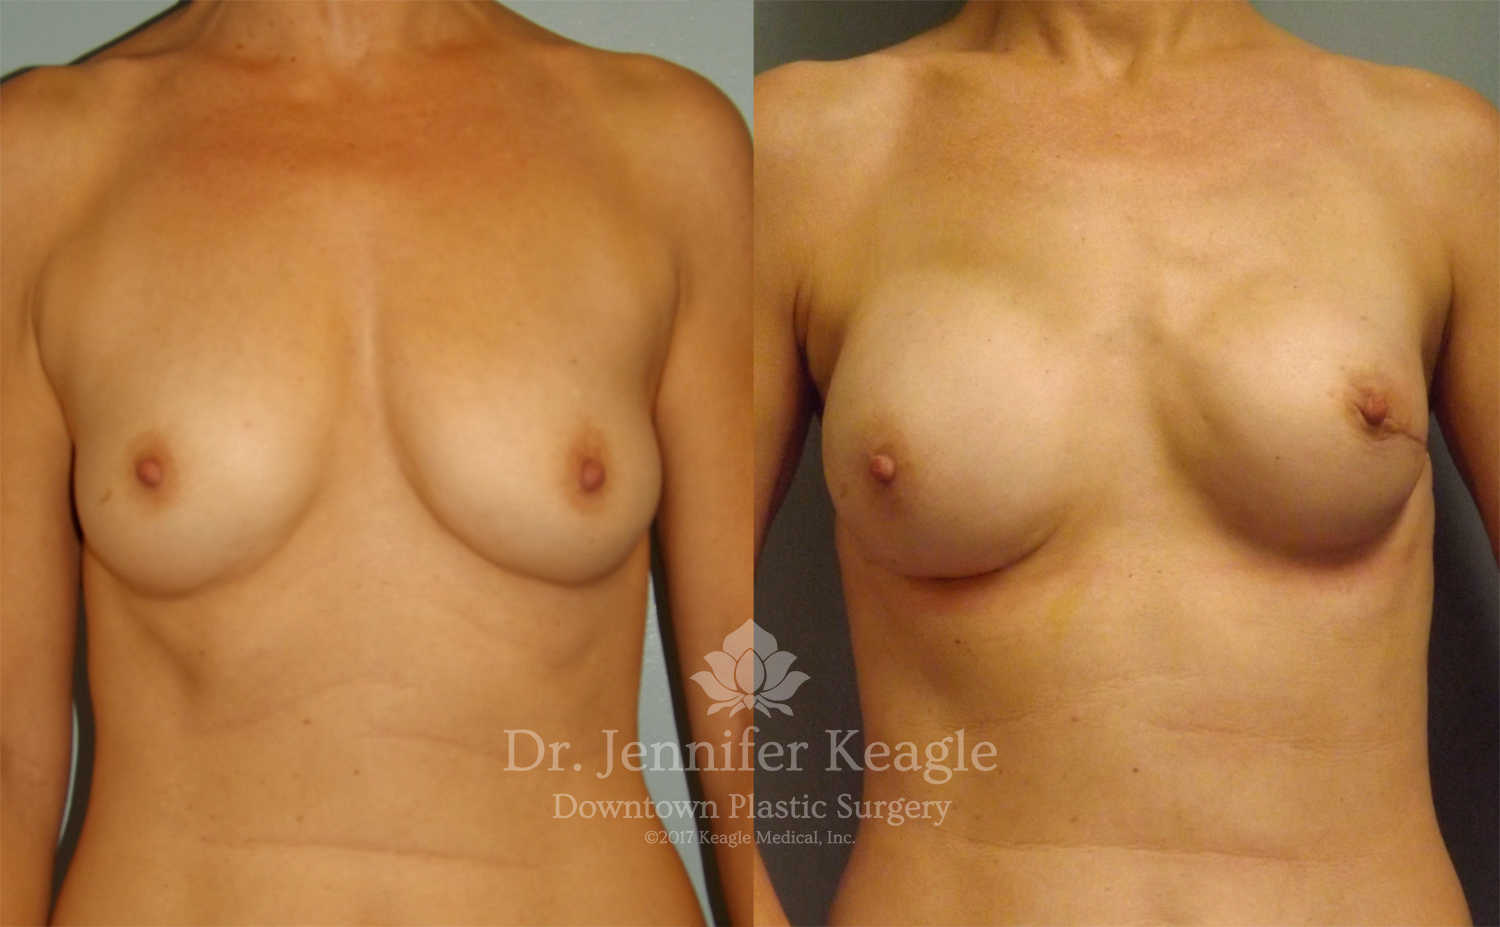 Breast reconstruction before and after bilateral nipple sparing mastectomy